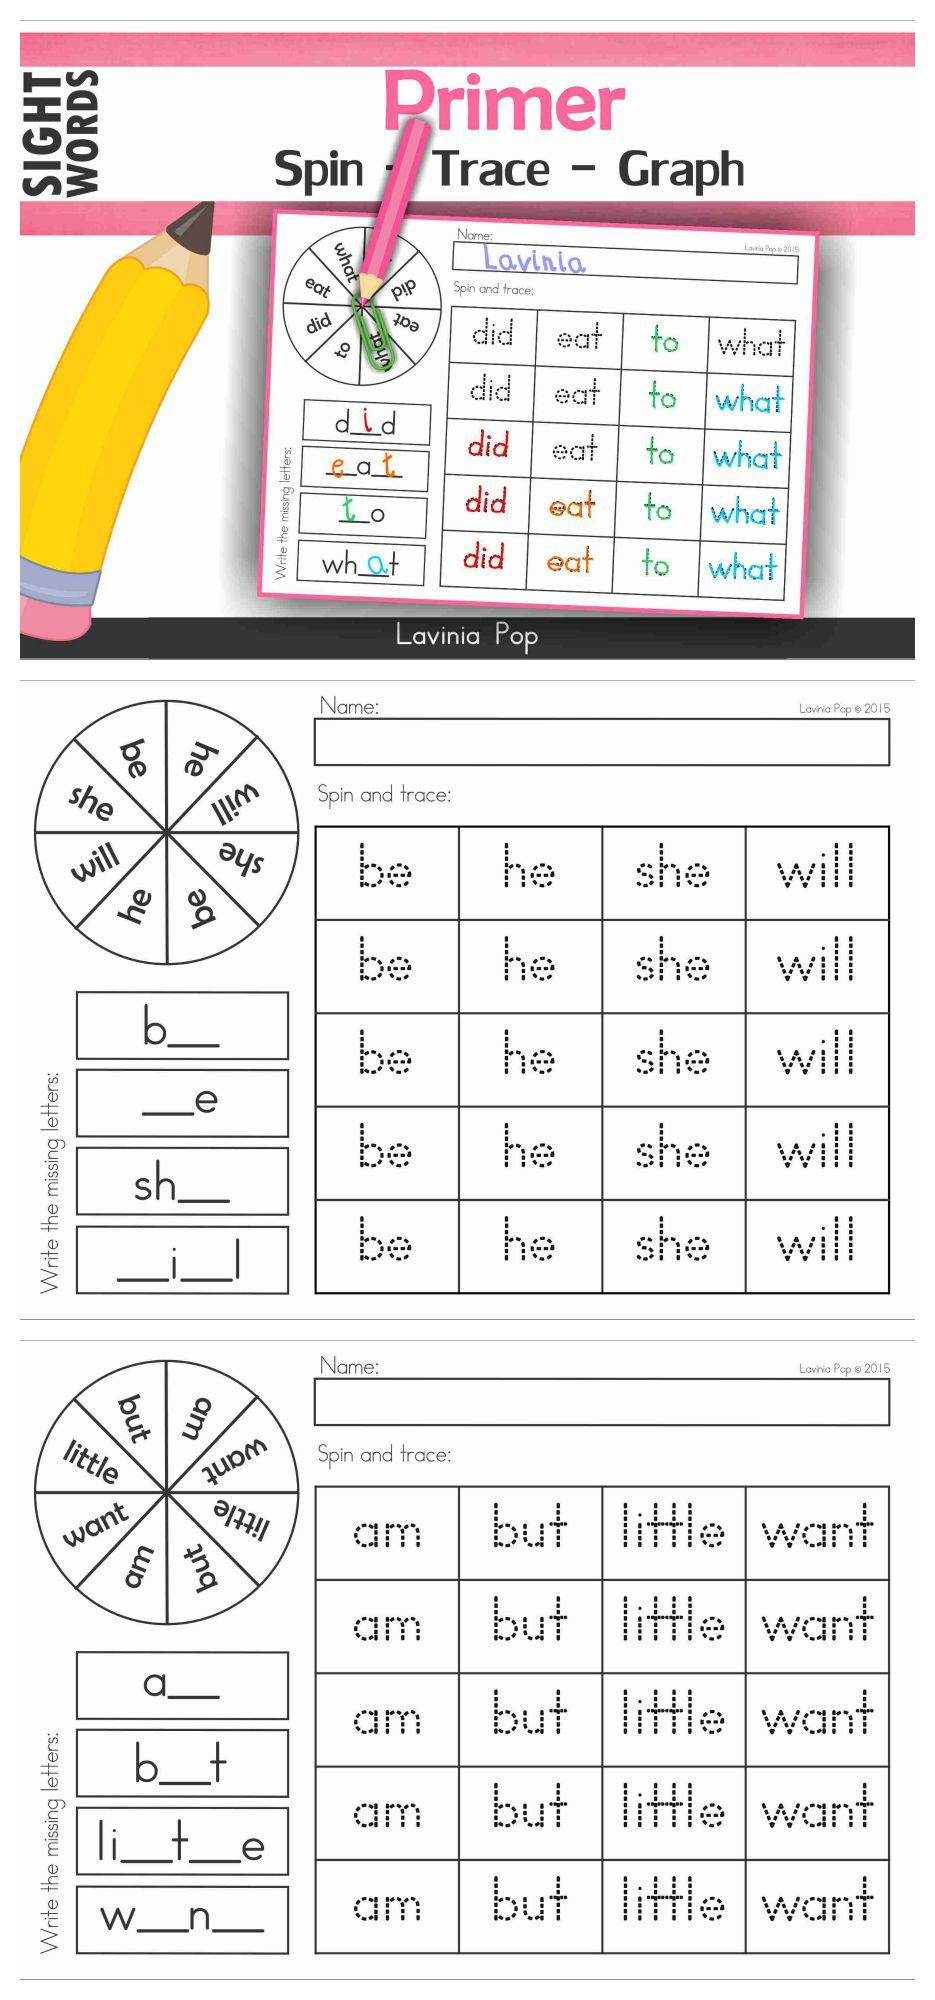 Sight Words Word Work Center Primer Sight Words Spin Trace Graph Laminate Or Put Into Plastic Reading Specialist Ideas Sight Words Sight Word Centers